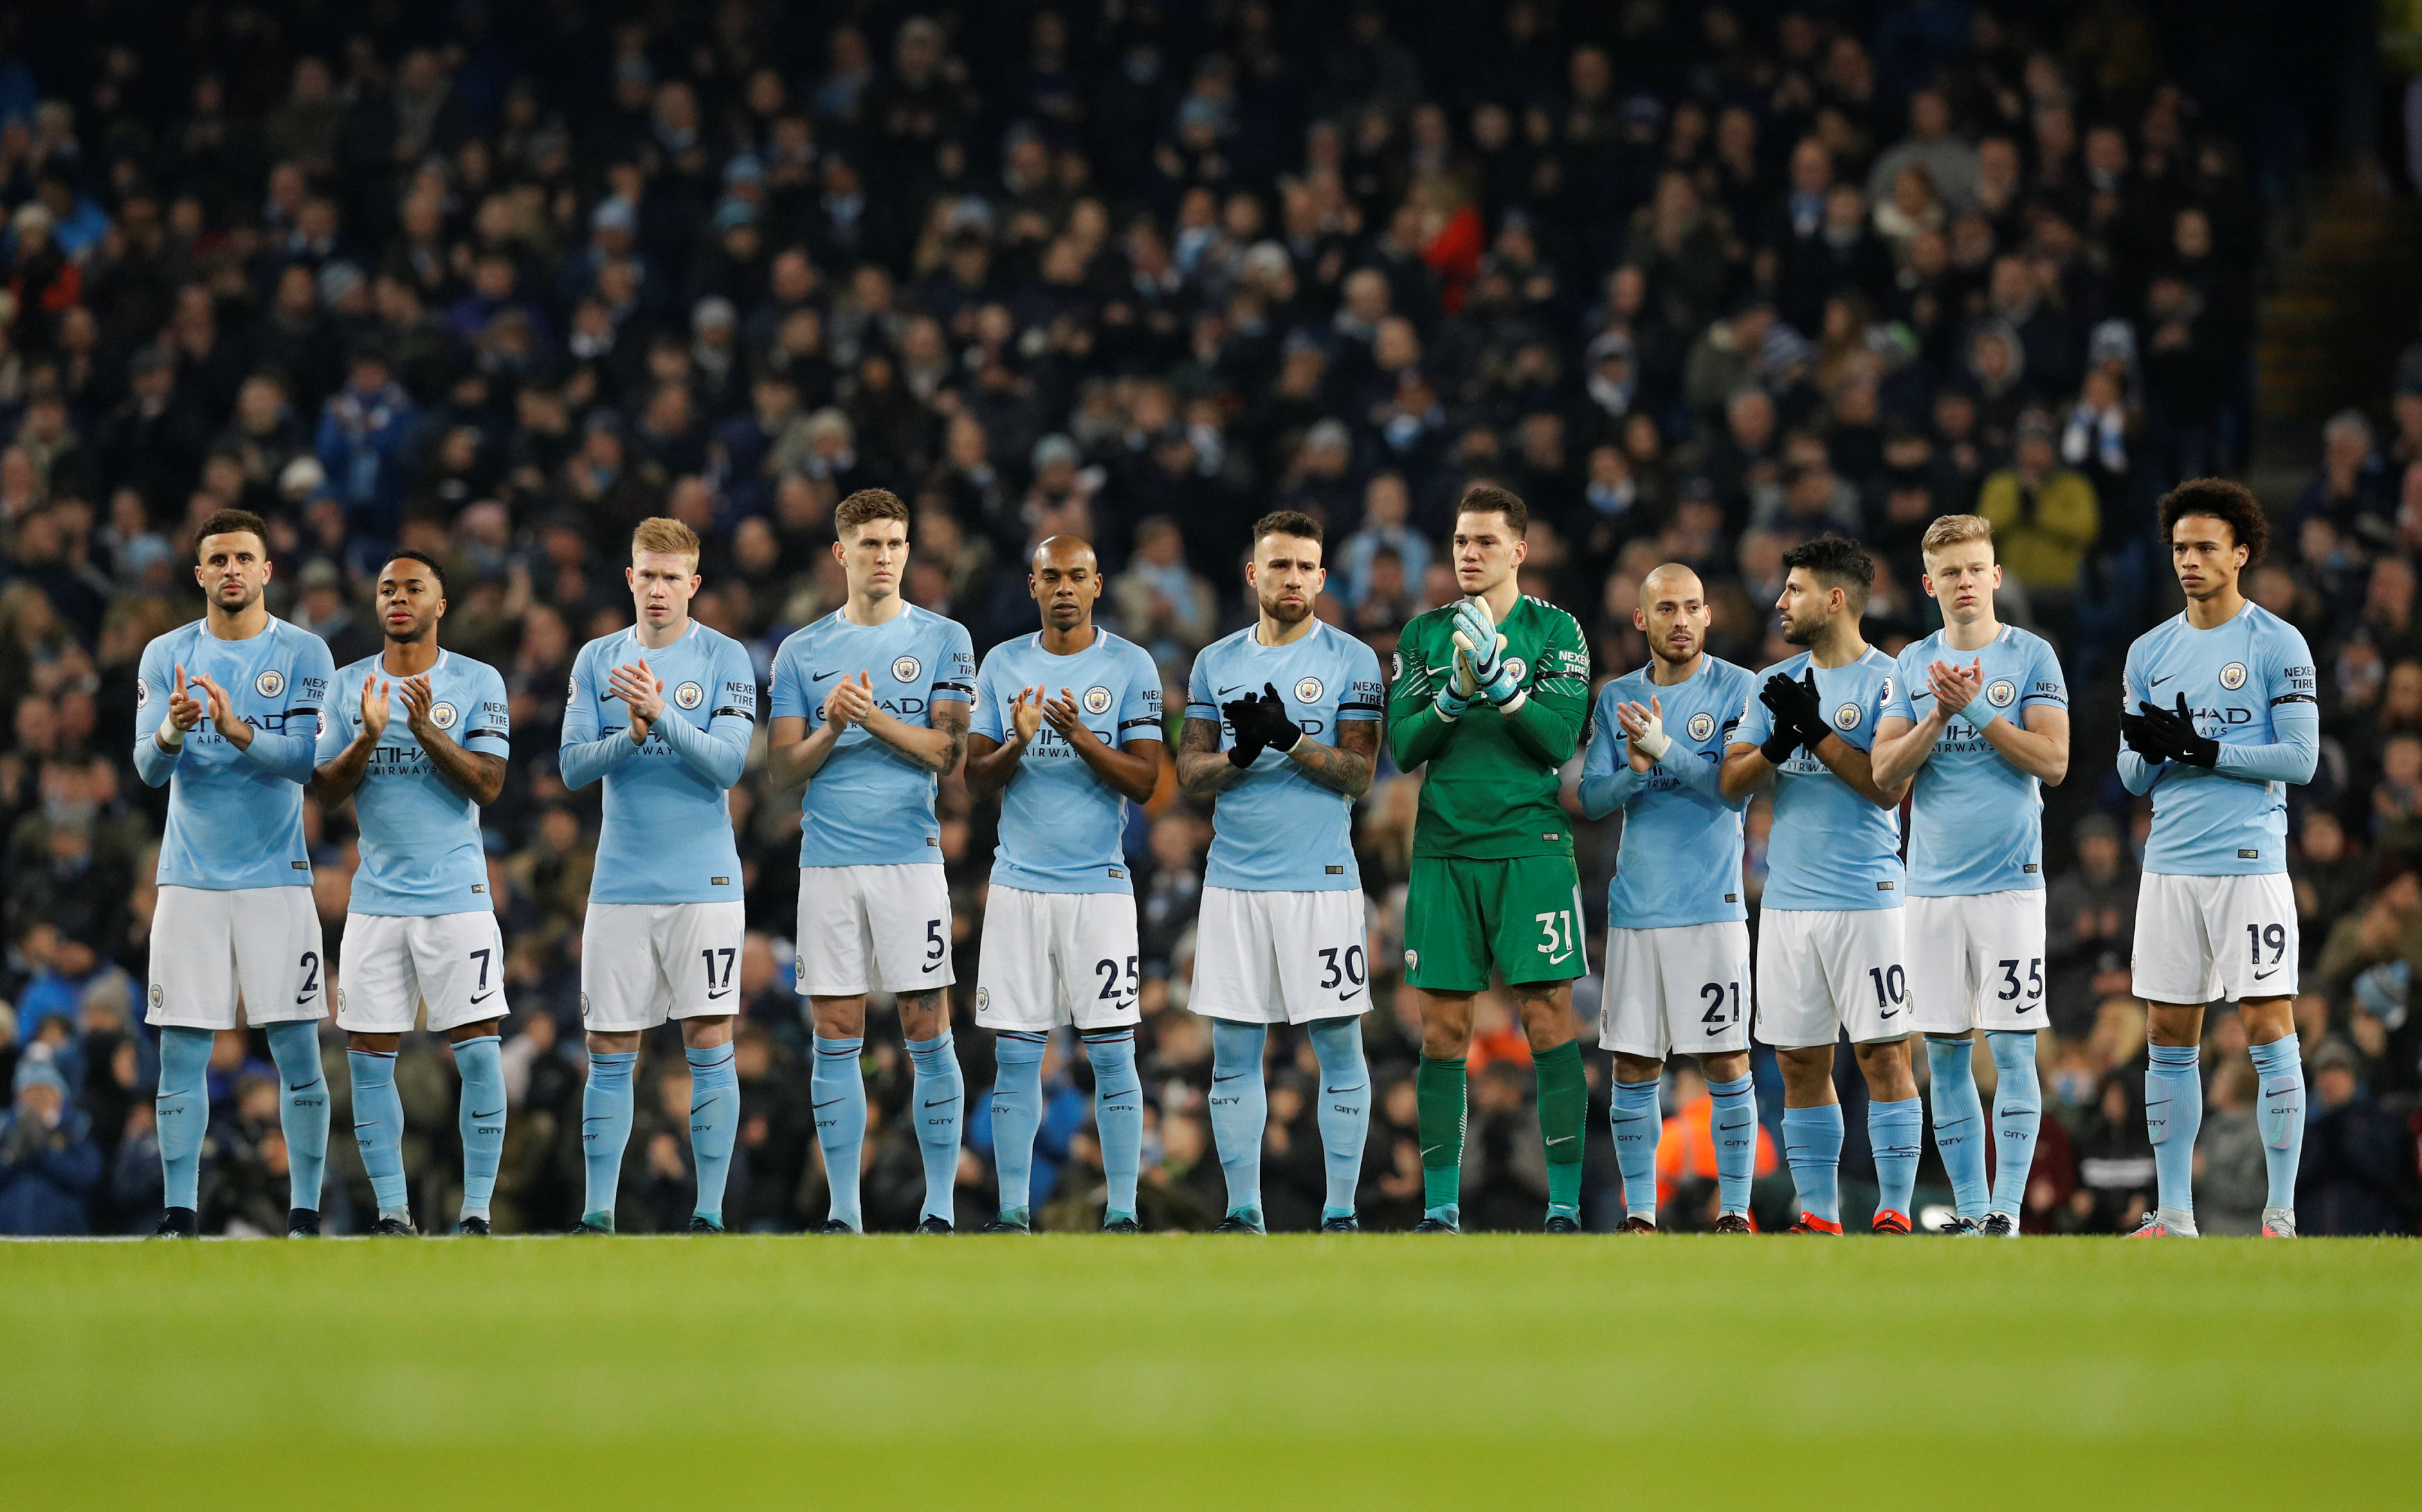 Manchester City squad 2019 all players 2018/19